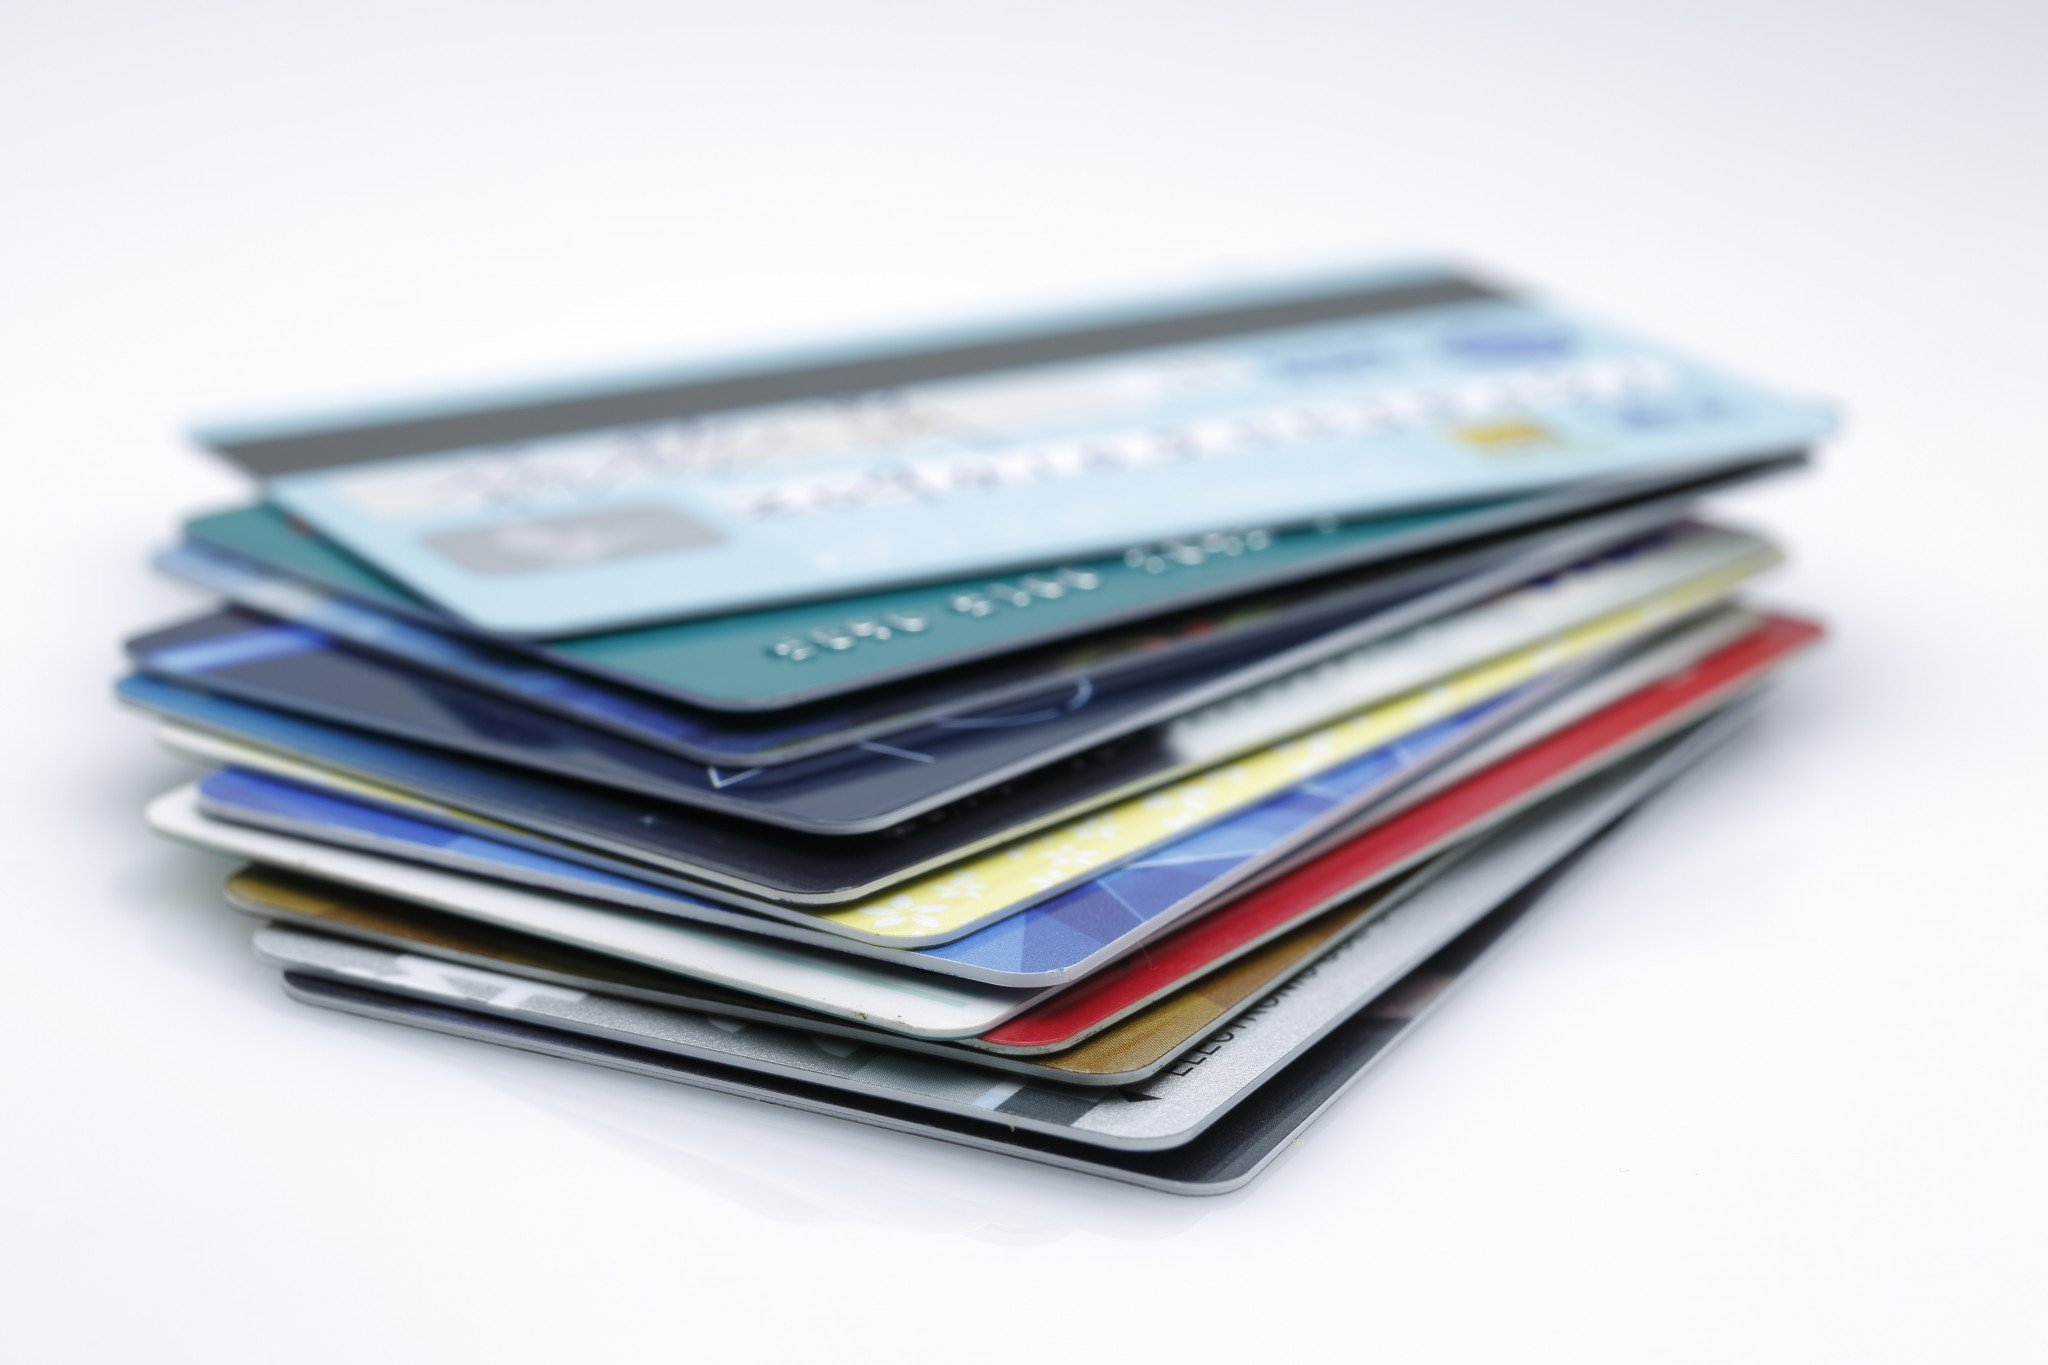 CFPB Prepaid Card Rule: How It Affects You - NerdWallet